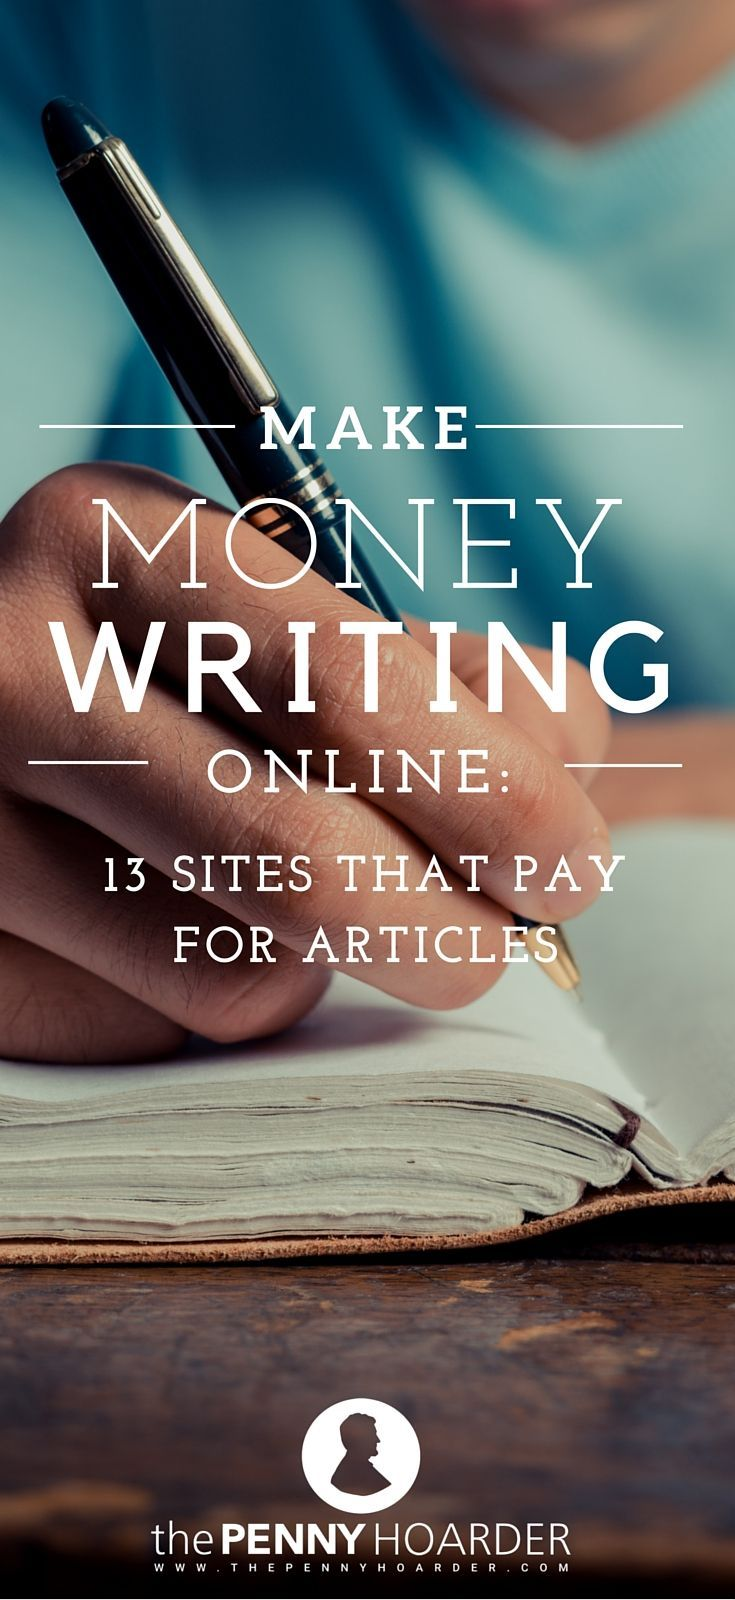 Want to get paid to write? We've put together a quick list of sites that pay for articles, from those that pay pennies per click to the more lucrative -- and competitive -- fixed-rate opportunities. - The Penny Hoarder http://www.thepennyhoarder.com/make-money-writing-online-13-sites-pay-articles/